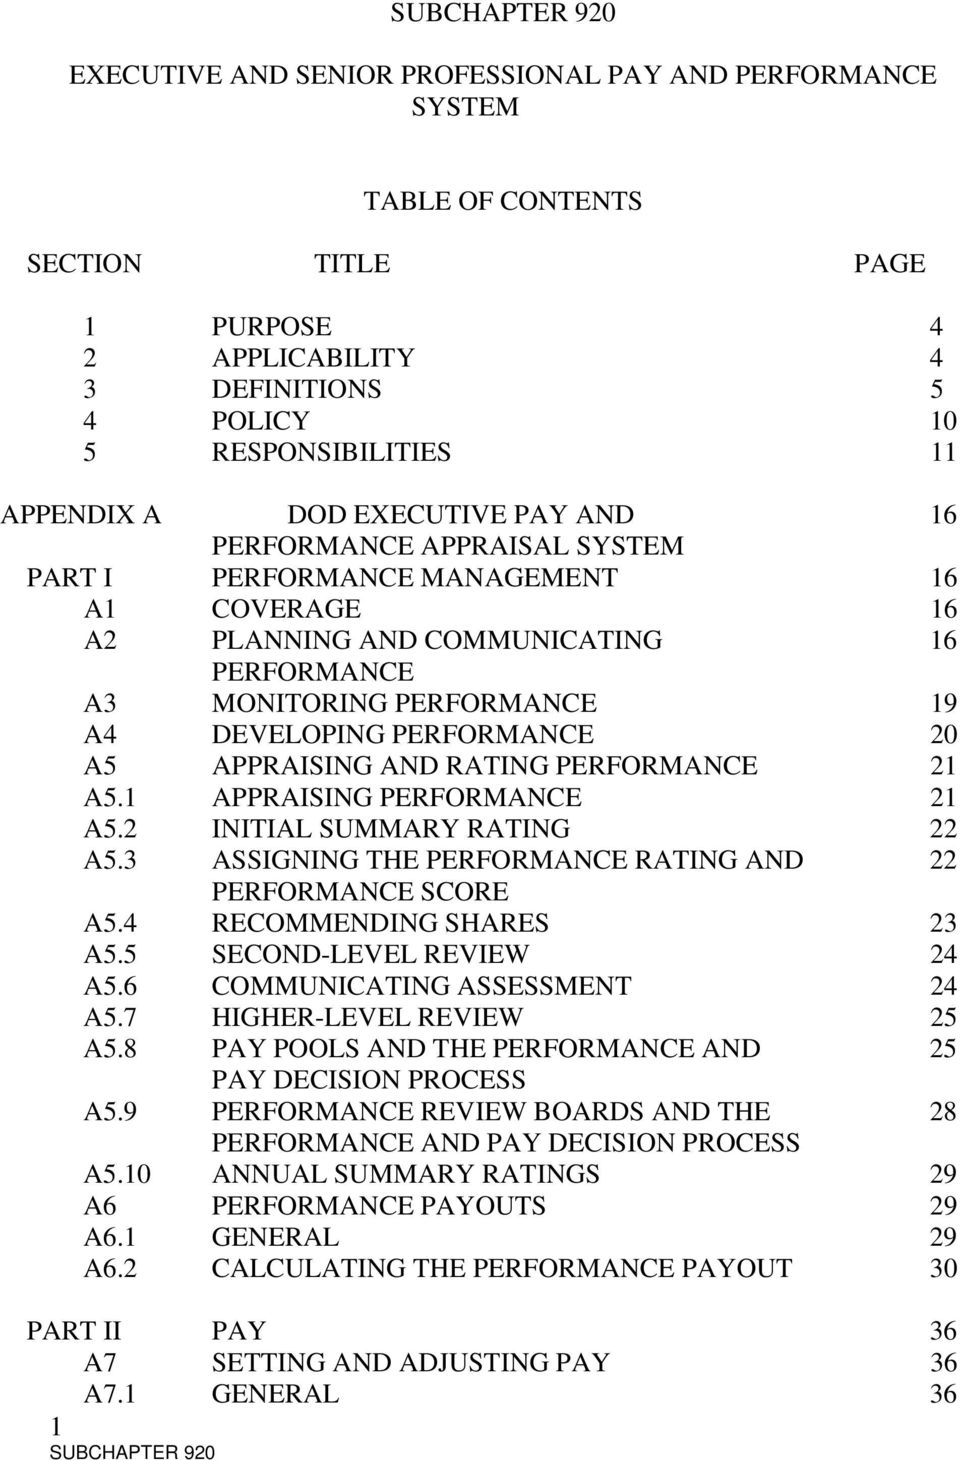 PERFORMANCE 19 A4 DEVELOPING PERFORMANCE 20 A5 APPRAISING AND RATING PERFORMANCE 21 A5.1 APPRAISING PERFORMANCE 21 A5.2 INITIAL SUMMARY RATING 22 A5.